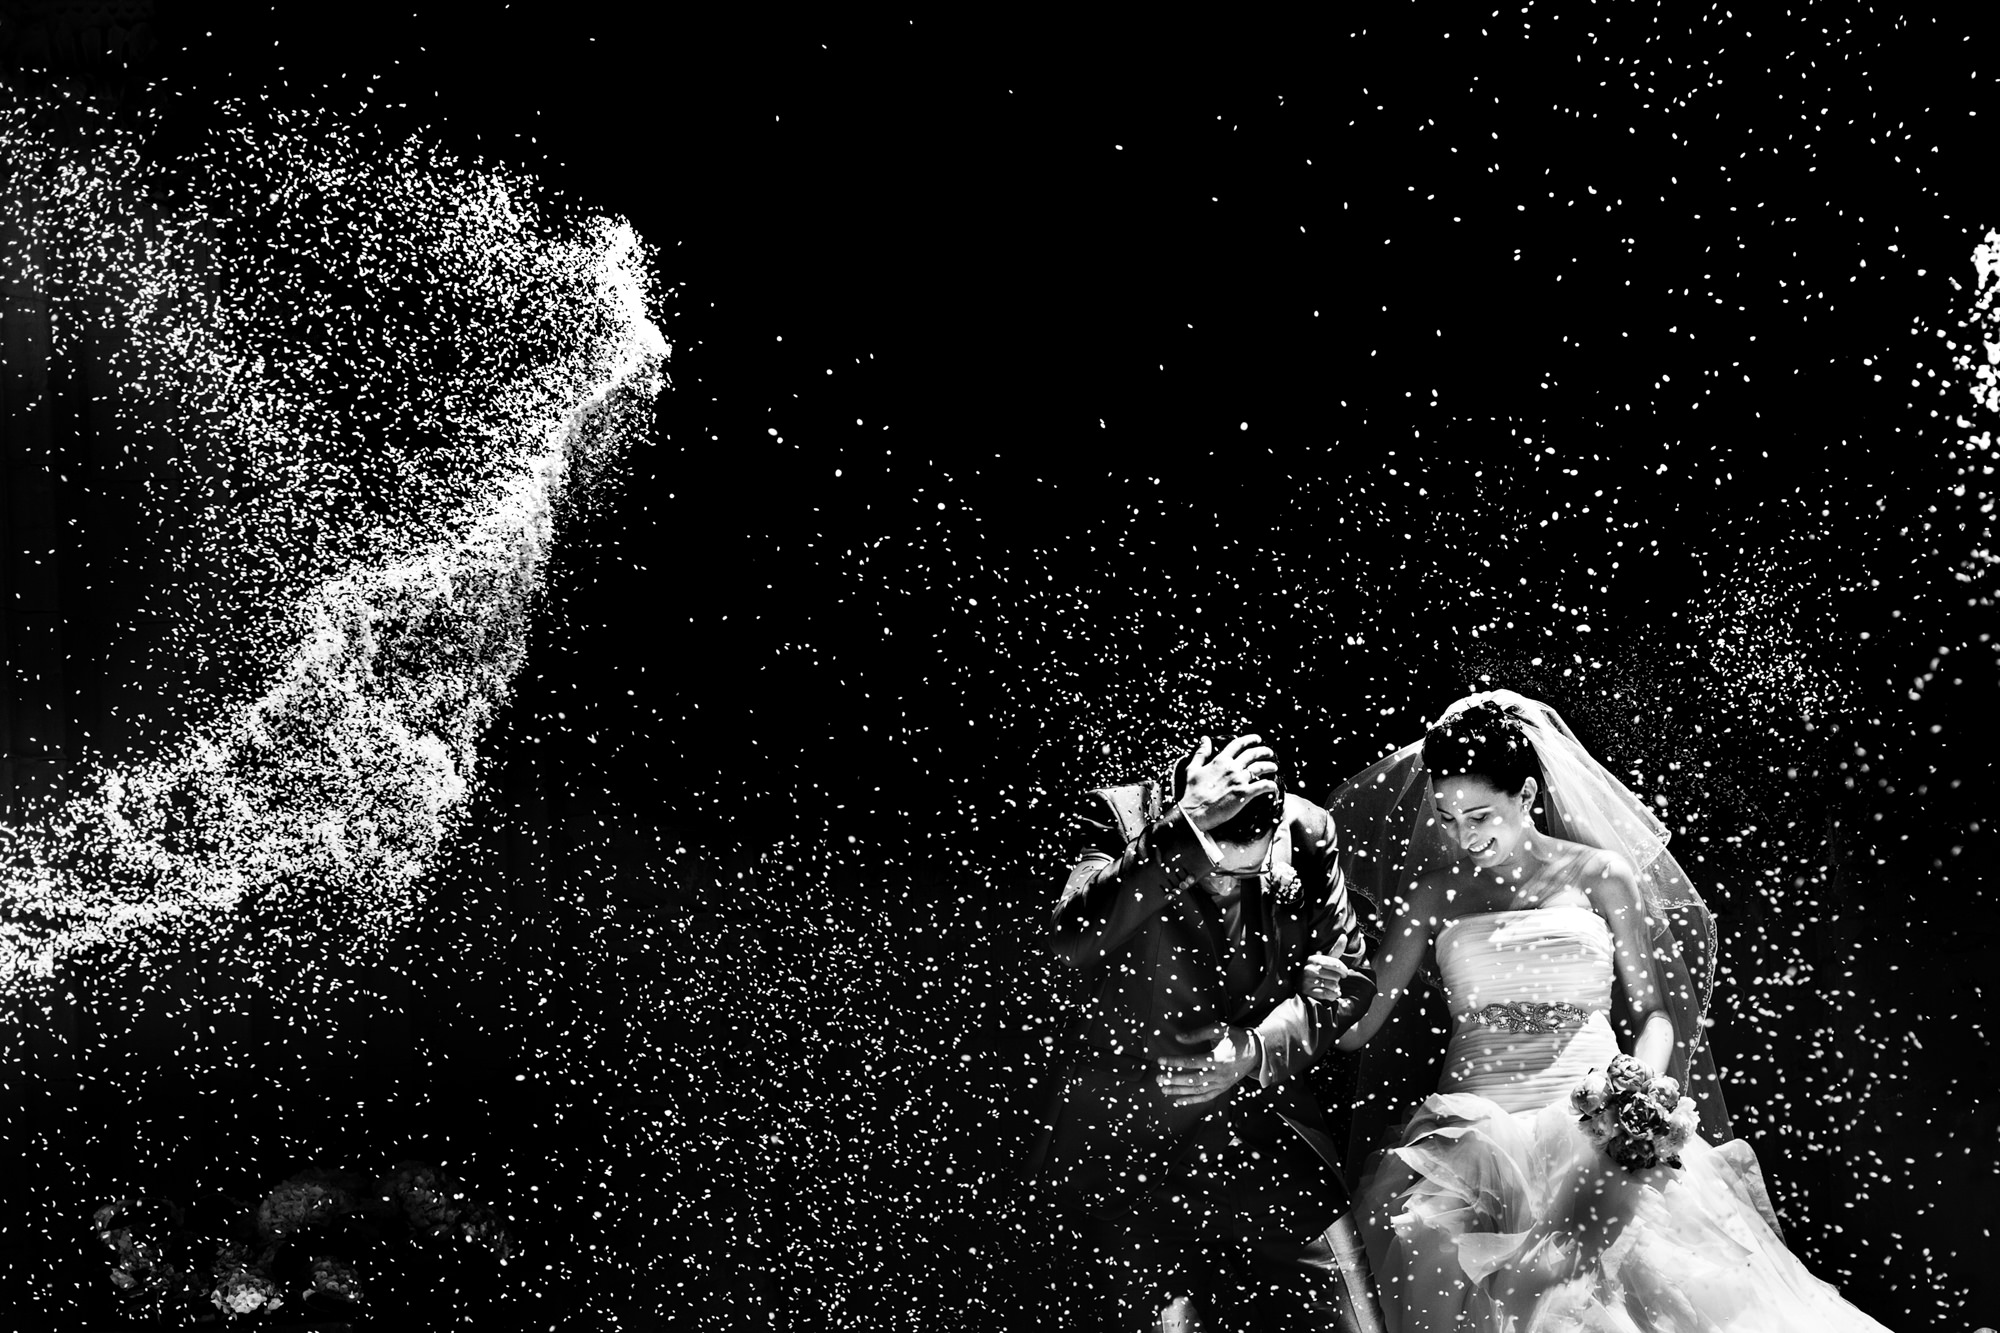 Couple being showered with rice - black and white - photo by Look Fotographica